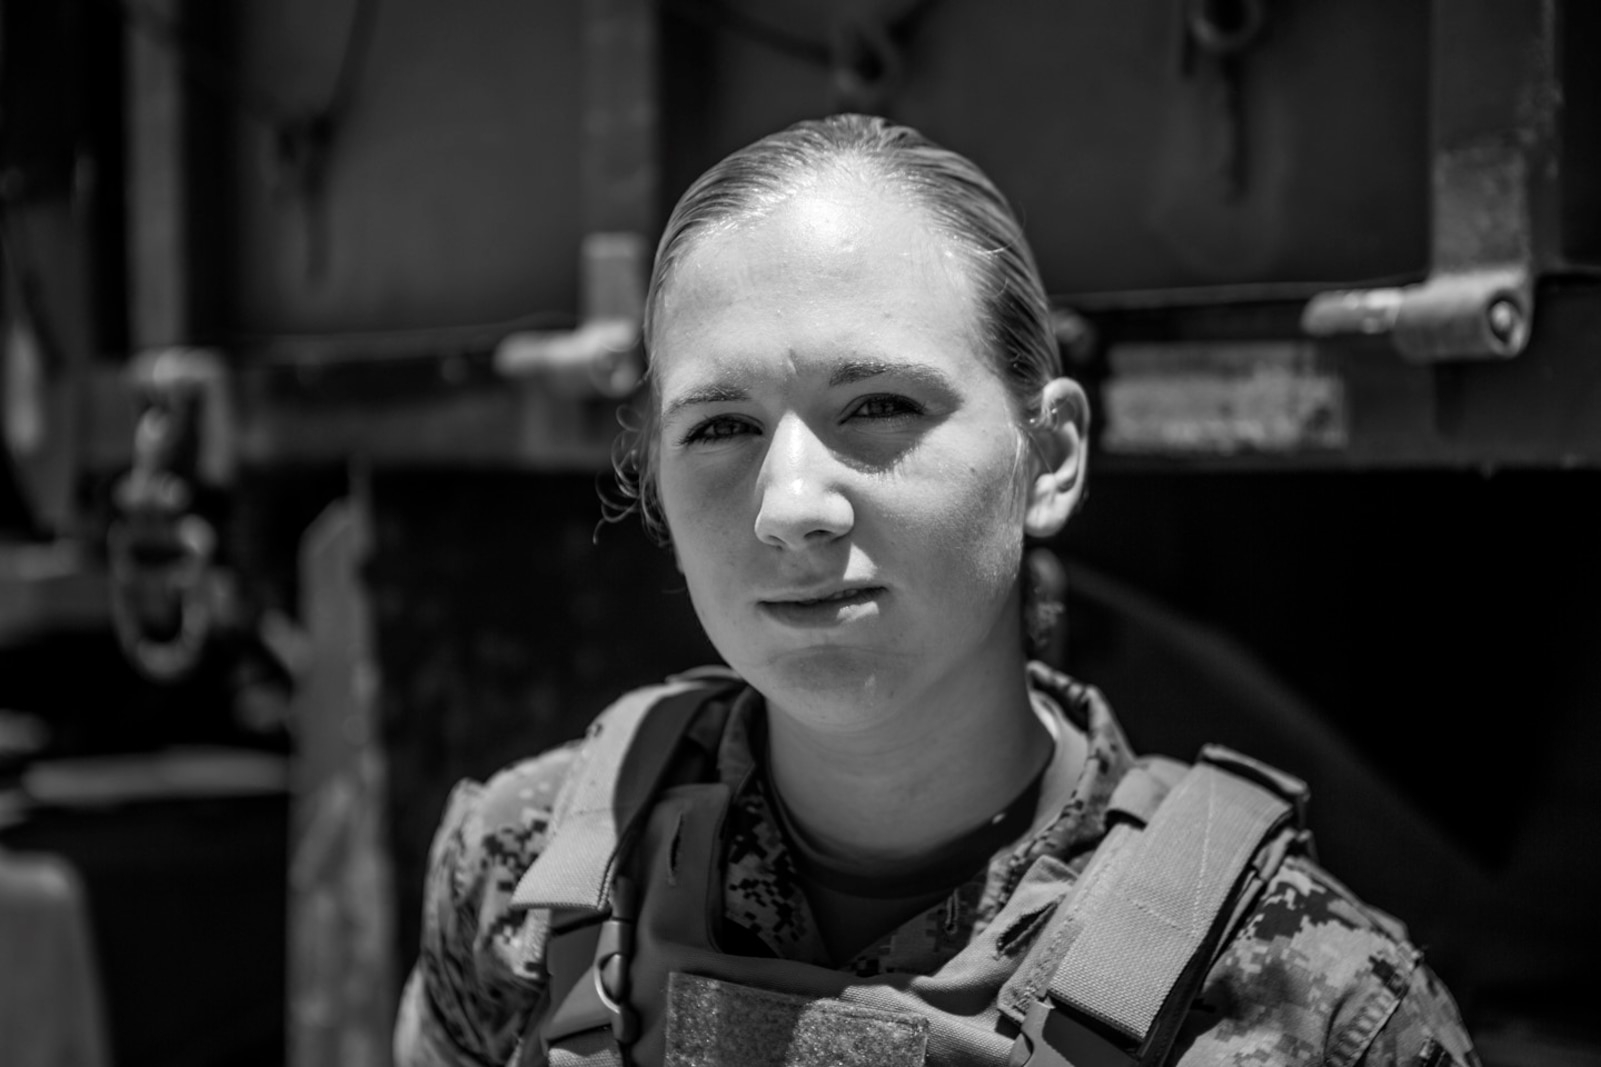 U.S. Marine Pfc. Heather Bartulewicz, poses beside Medium Tactical Vehicle Replacement MK23 truck on Camp Pendleton, Calif., June 20, 2017. Motor Transport operators maintain and operate both commercial and tactical vehicles and are responsible for the transportation of everything from supplies and resources, to Marines and their equipment. (U.S. Marine Corps photo by Lance Cpl. Joseph Sorci)